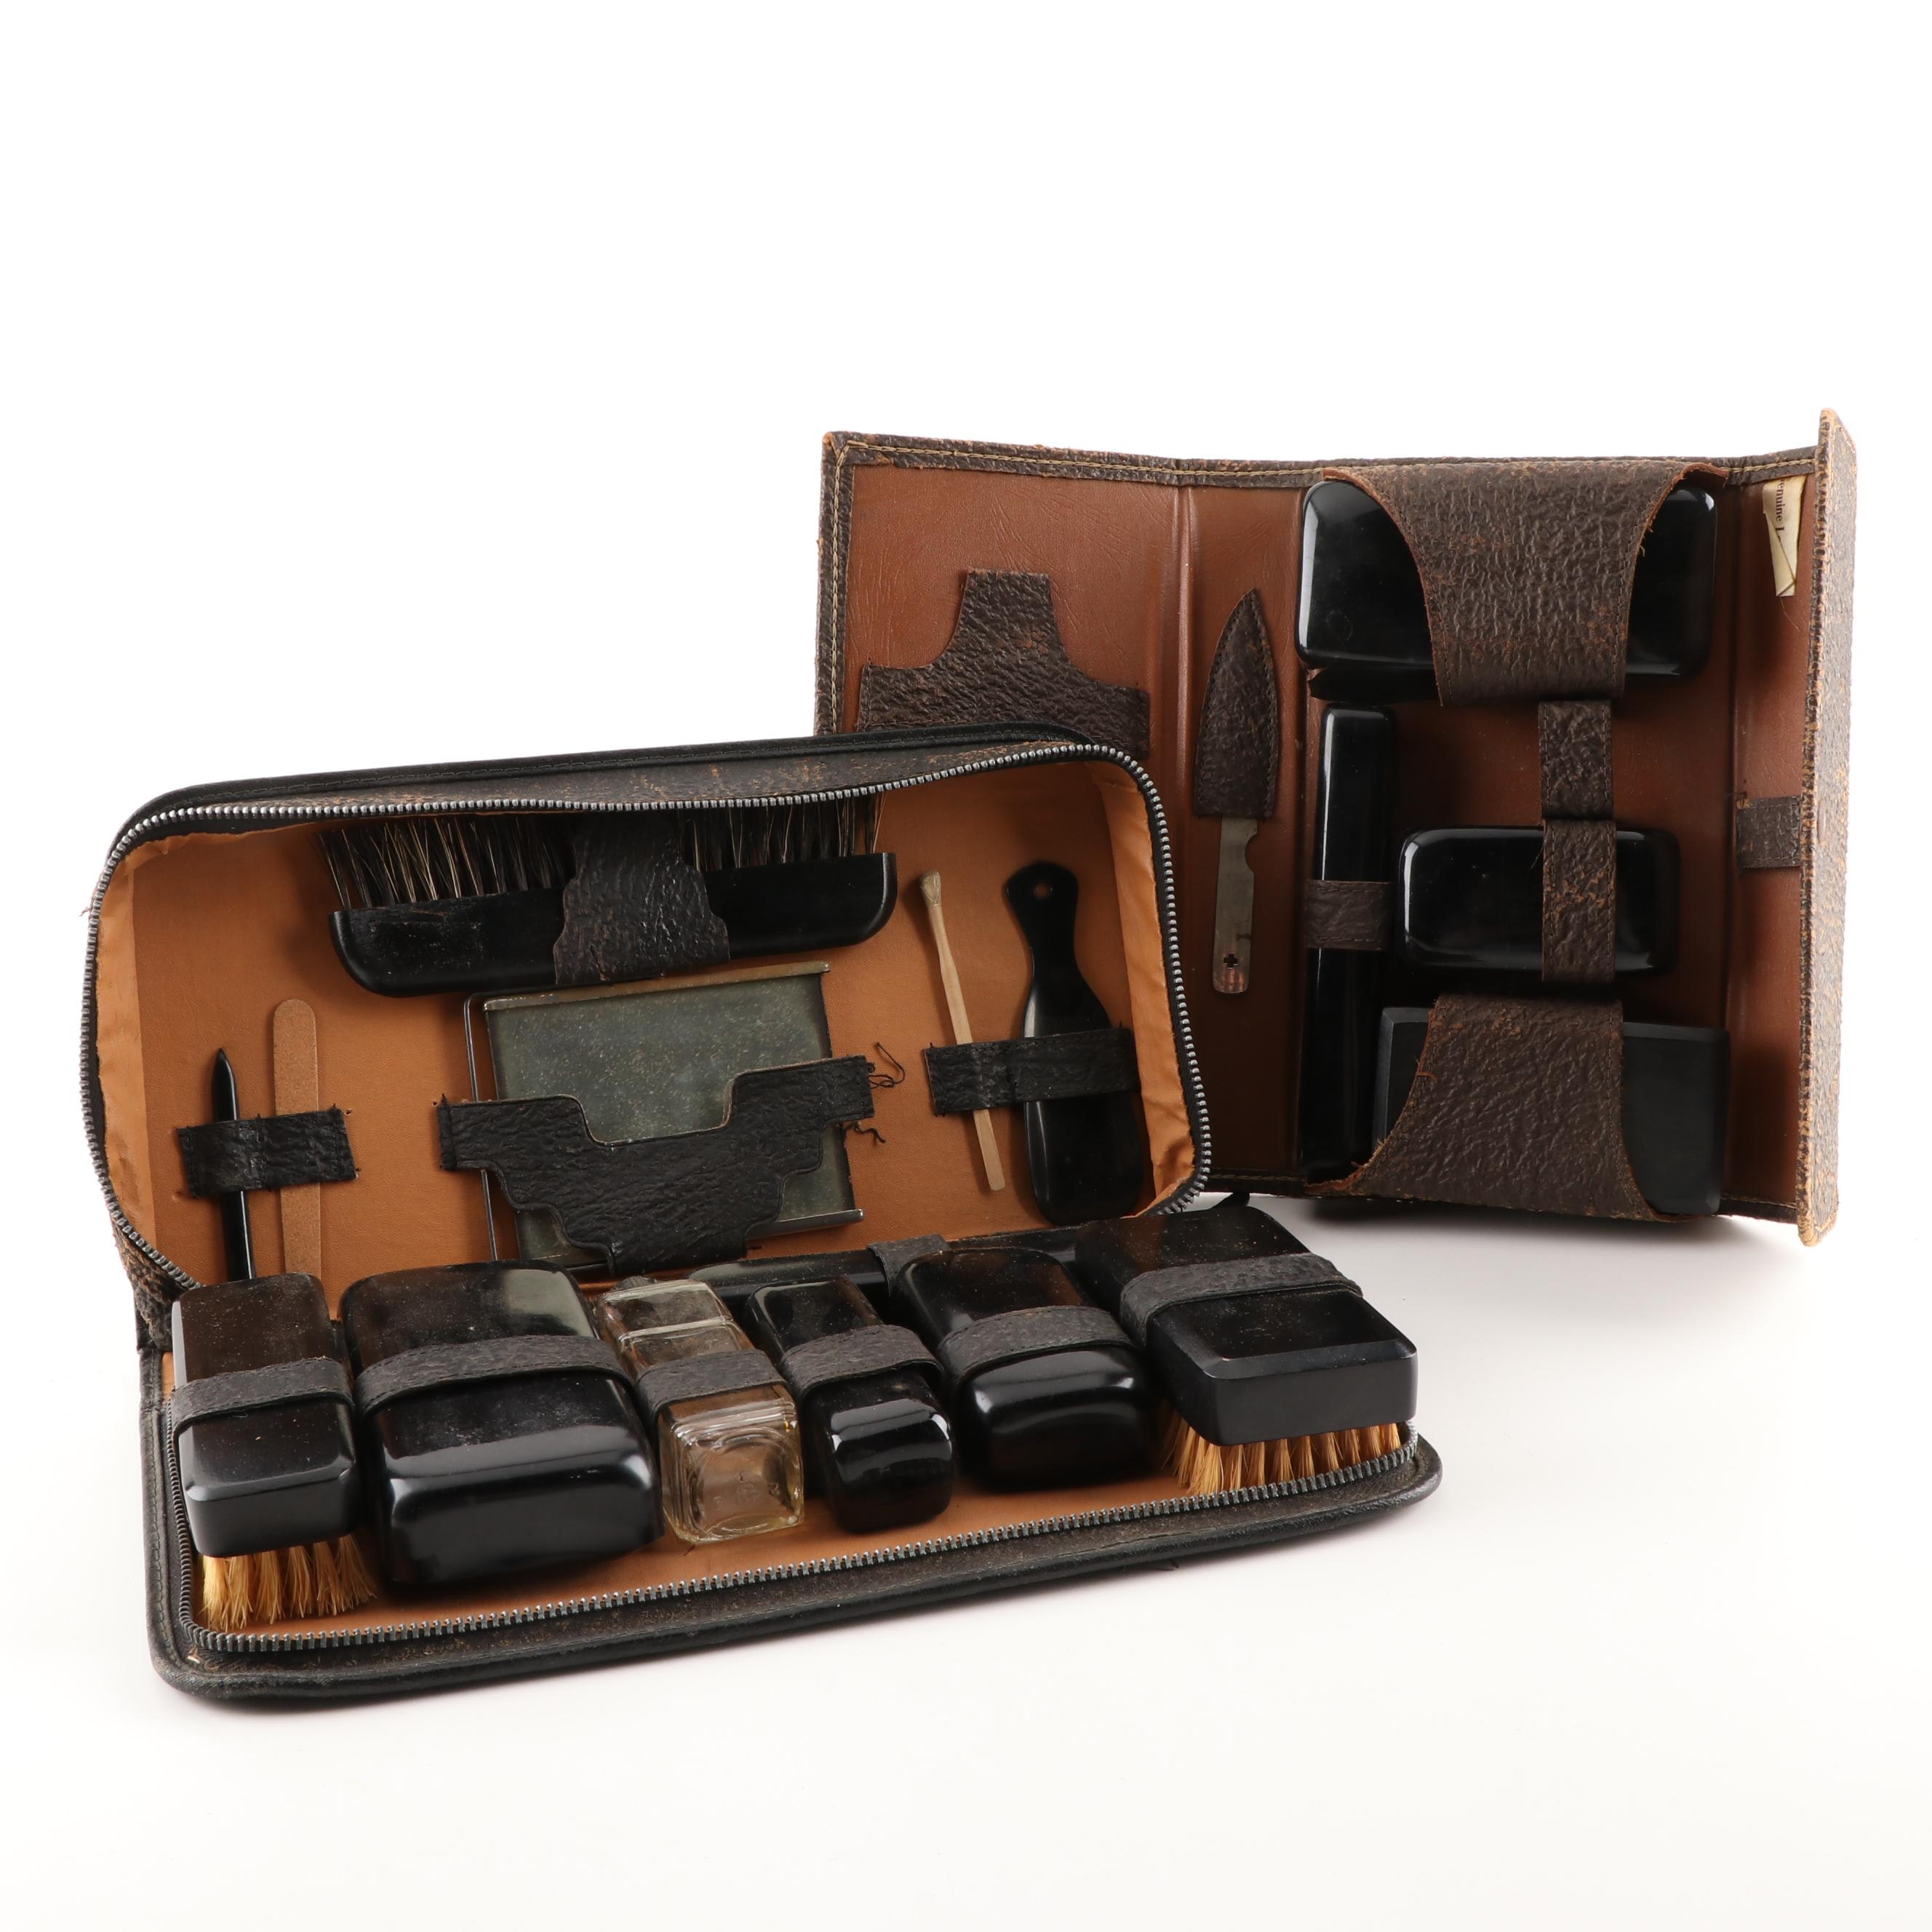 Men's Leather Dopp Kits, Circa 1940